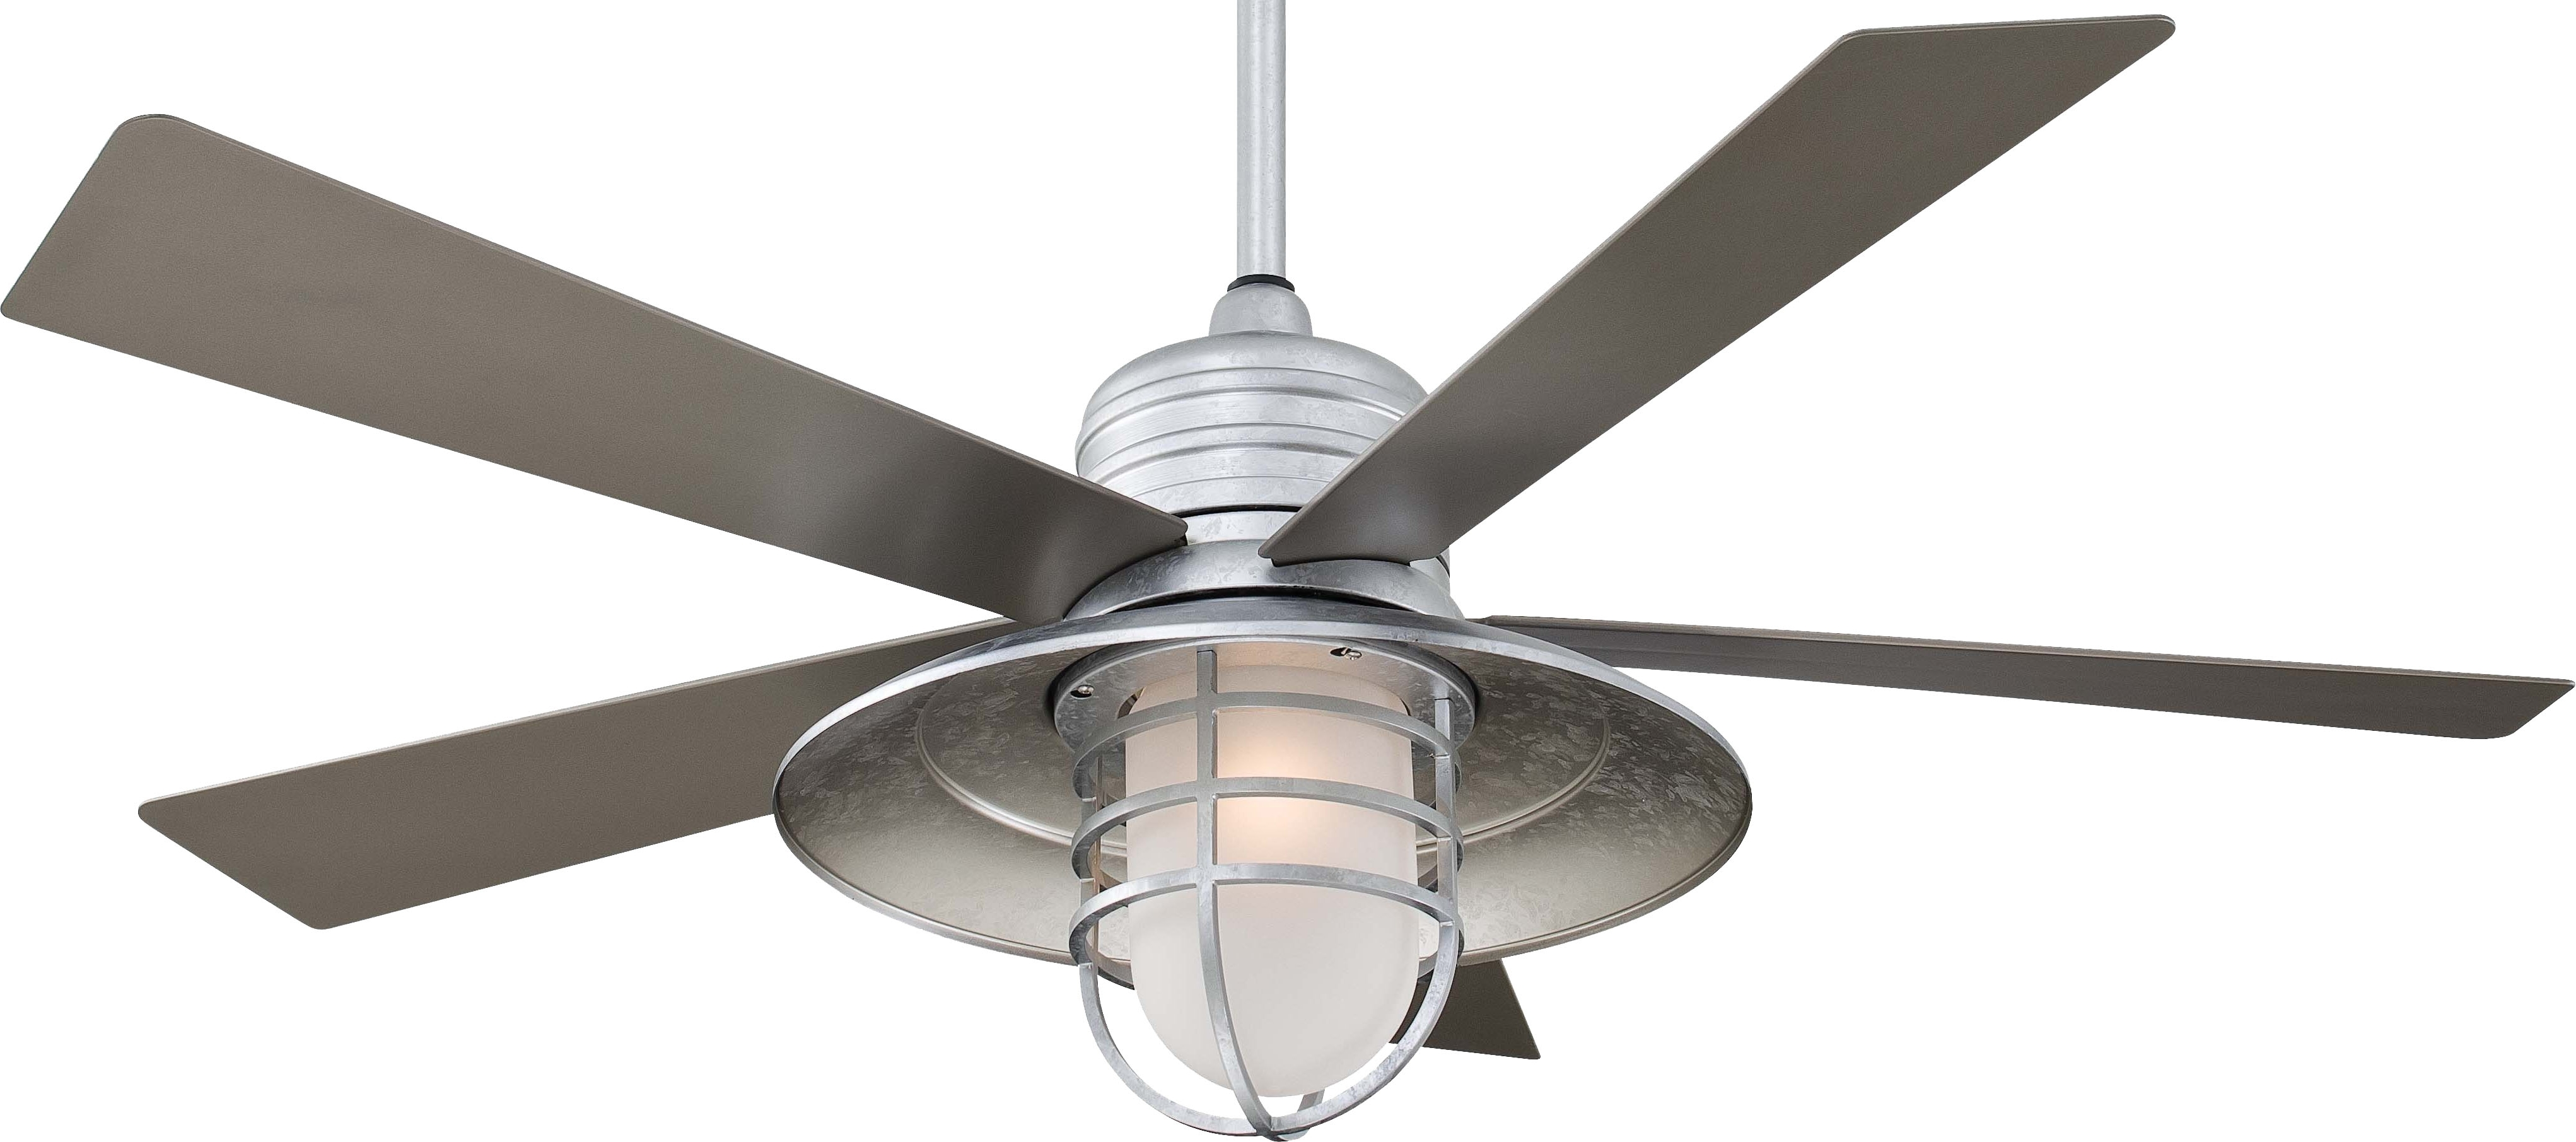 Favorite Outdoor Ceiling Fans With Galvanized Blades With Regard To Mid Century Galvanized Ceiling Fan Light Kit Modern Tray Definition (View 5 of 20)